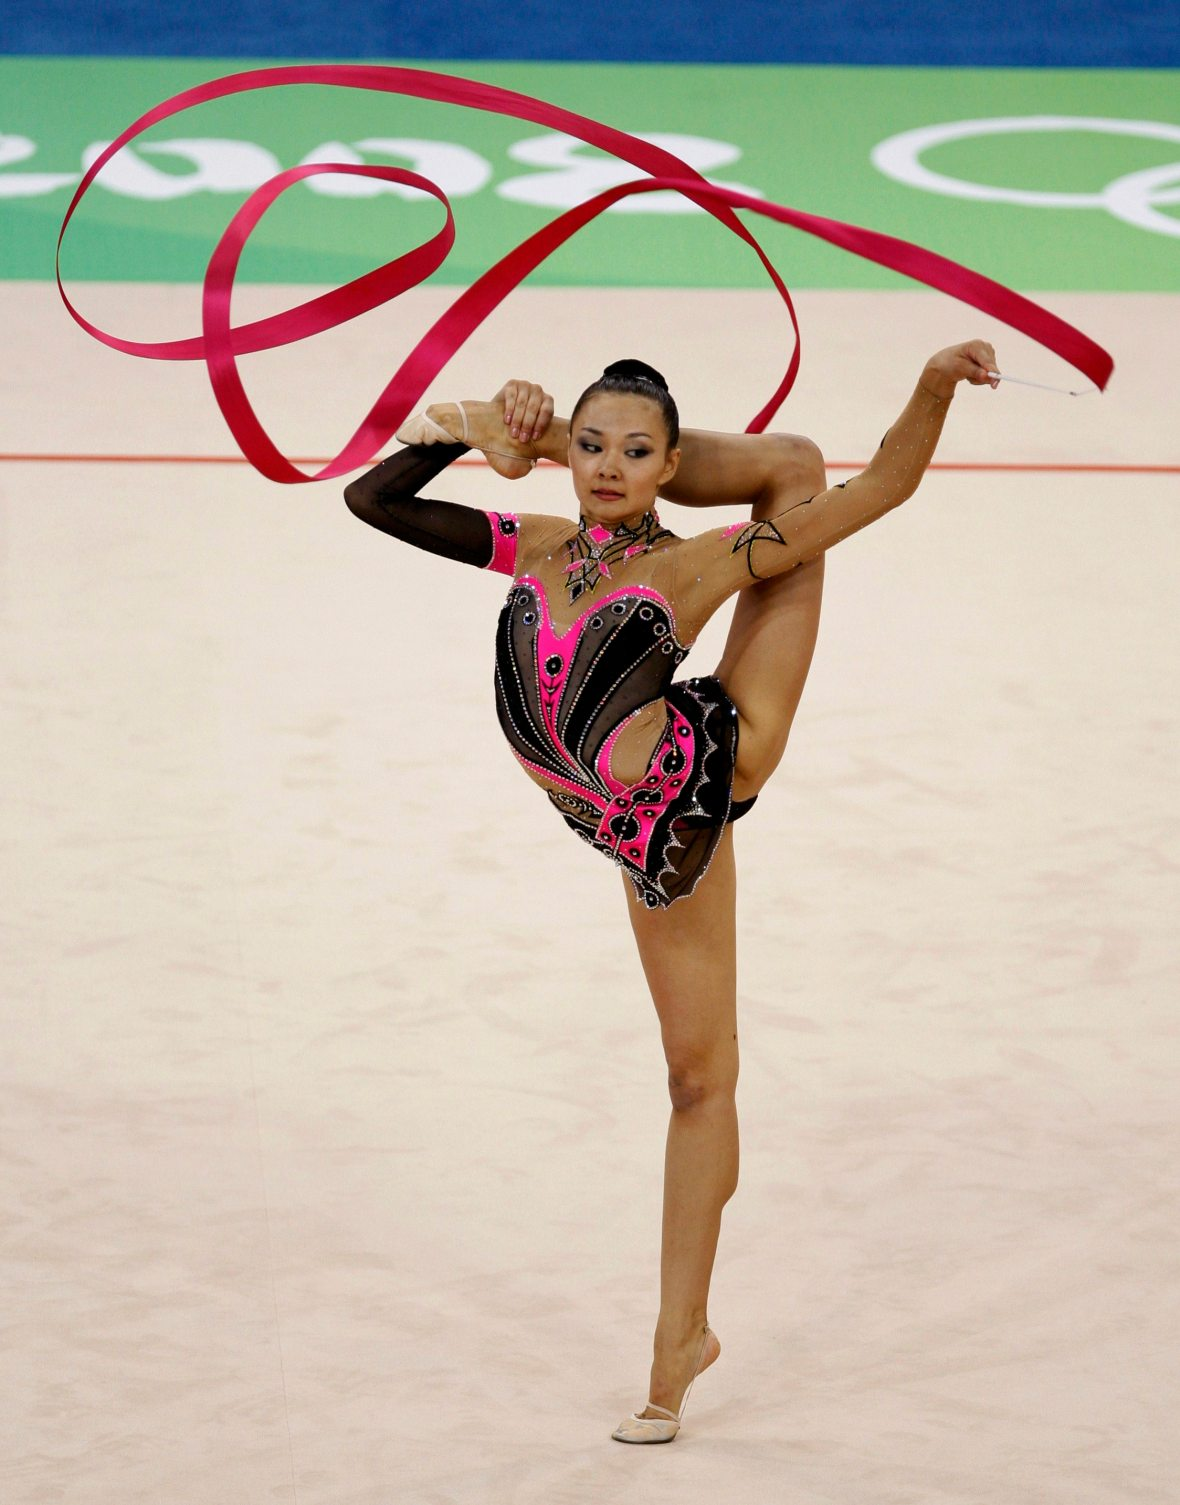 Aliya Yussupova of Kazakhstan performs with the ribbon during the individual all-around final of the rhythmic gymnastics competition at the Beijing 2008 Olympic Games